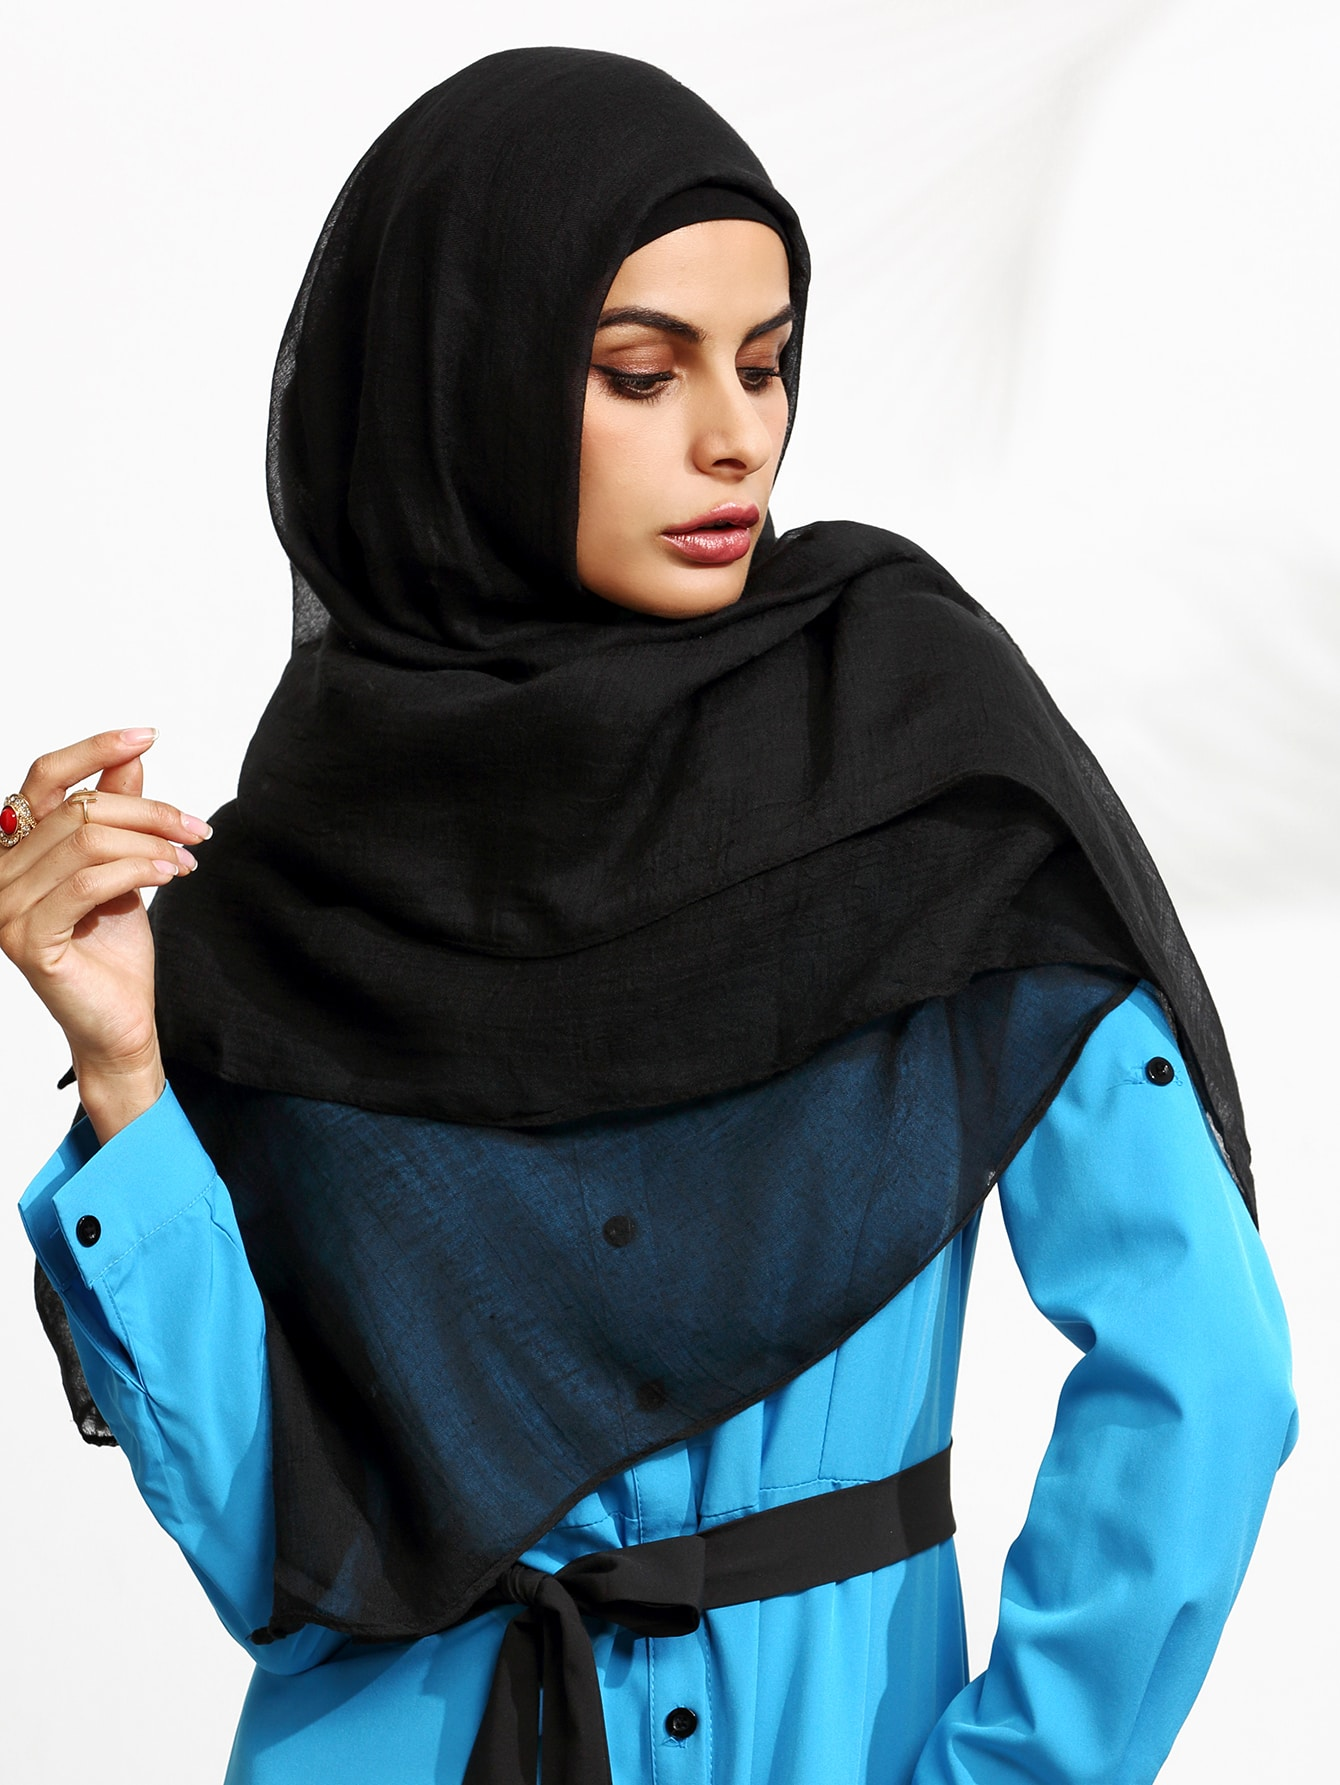 Black Sheer Hijab ScarfBlack Sheer Hijab Scarf<br><br>color: Black<br>size: None